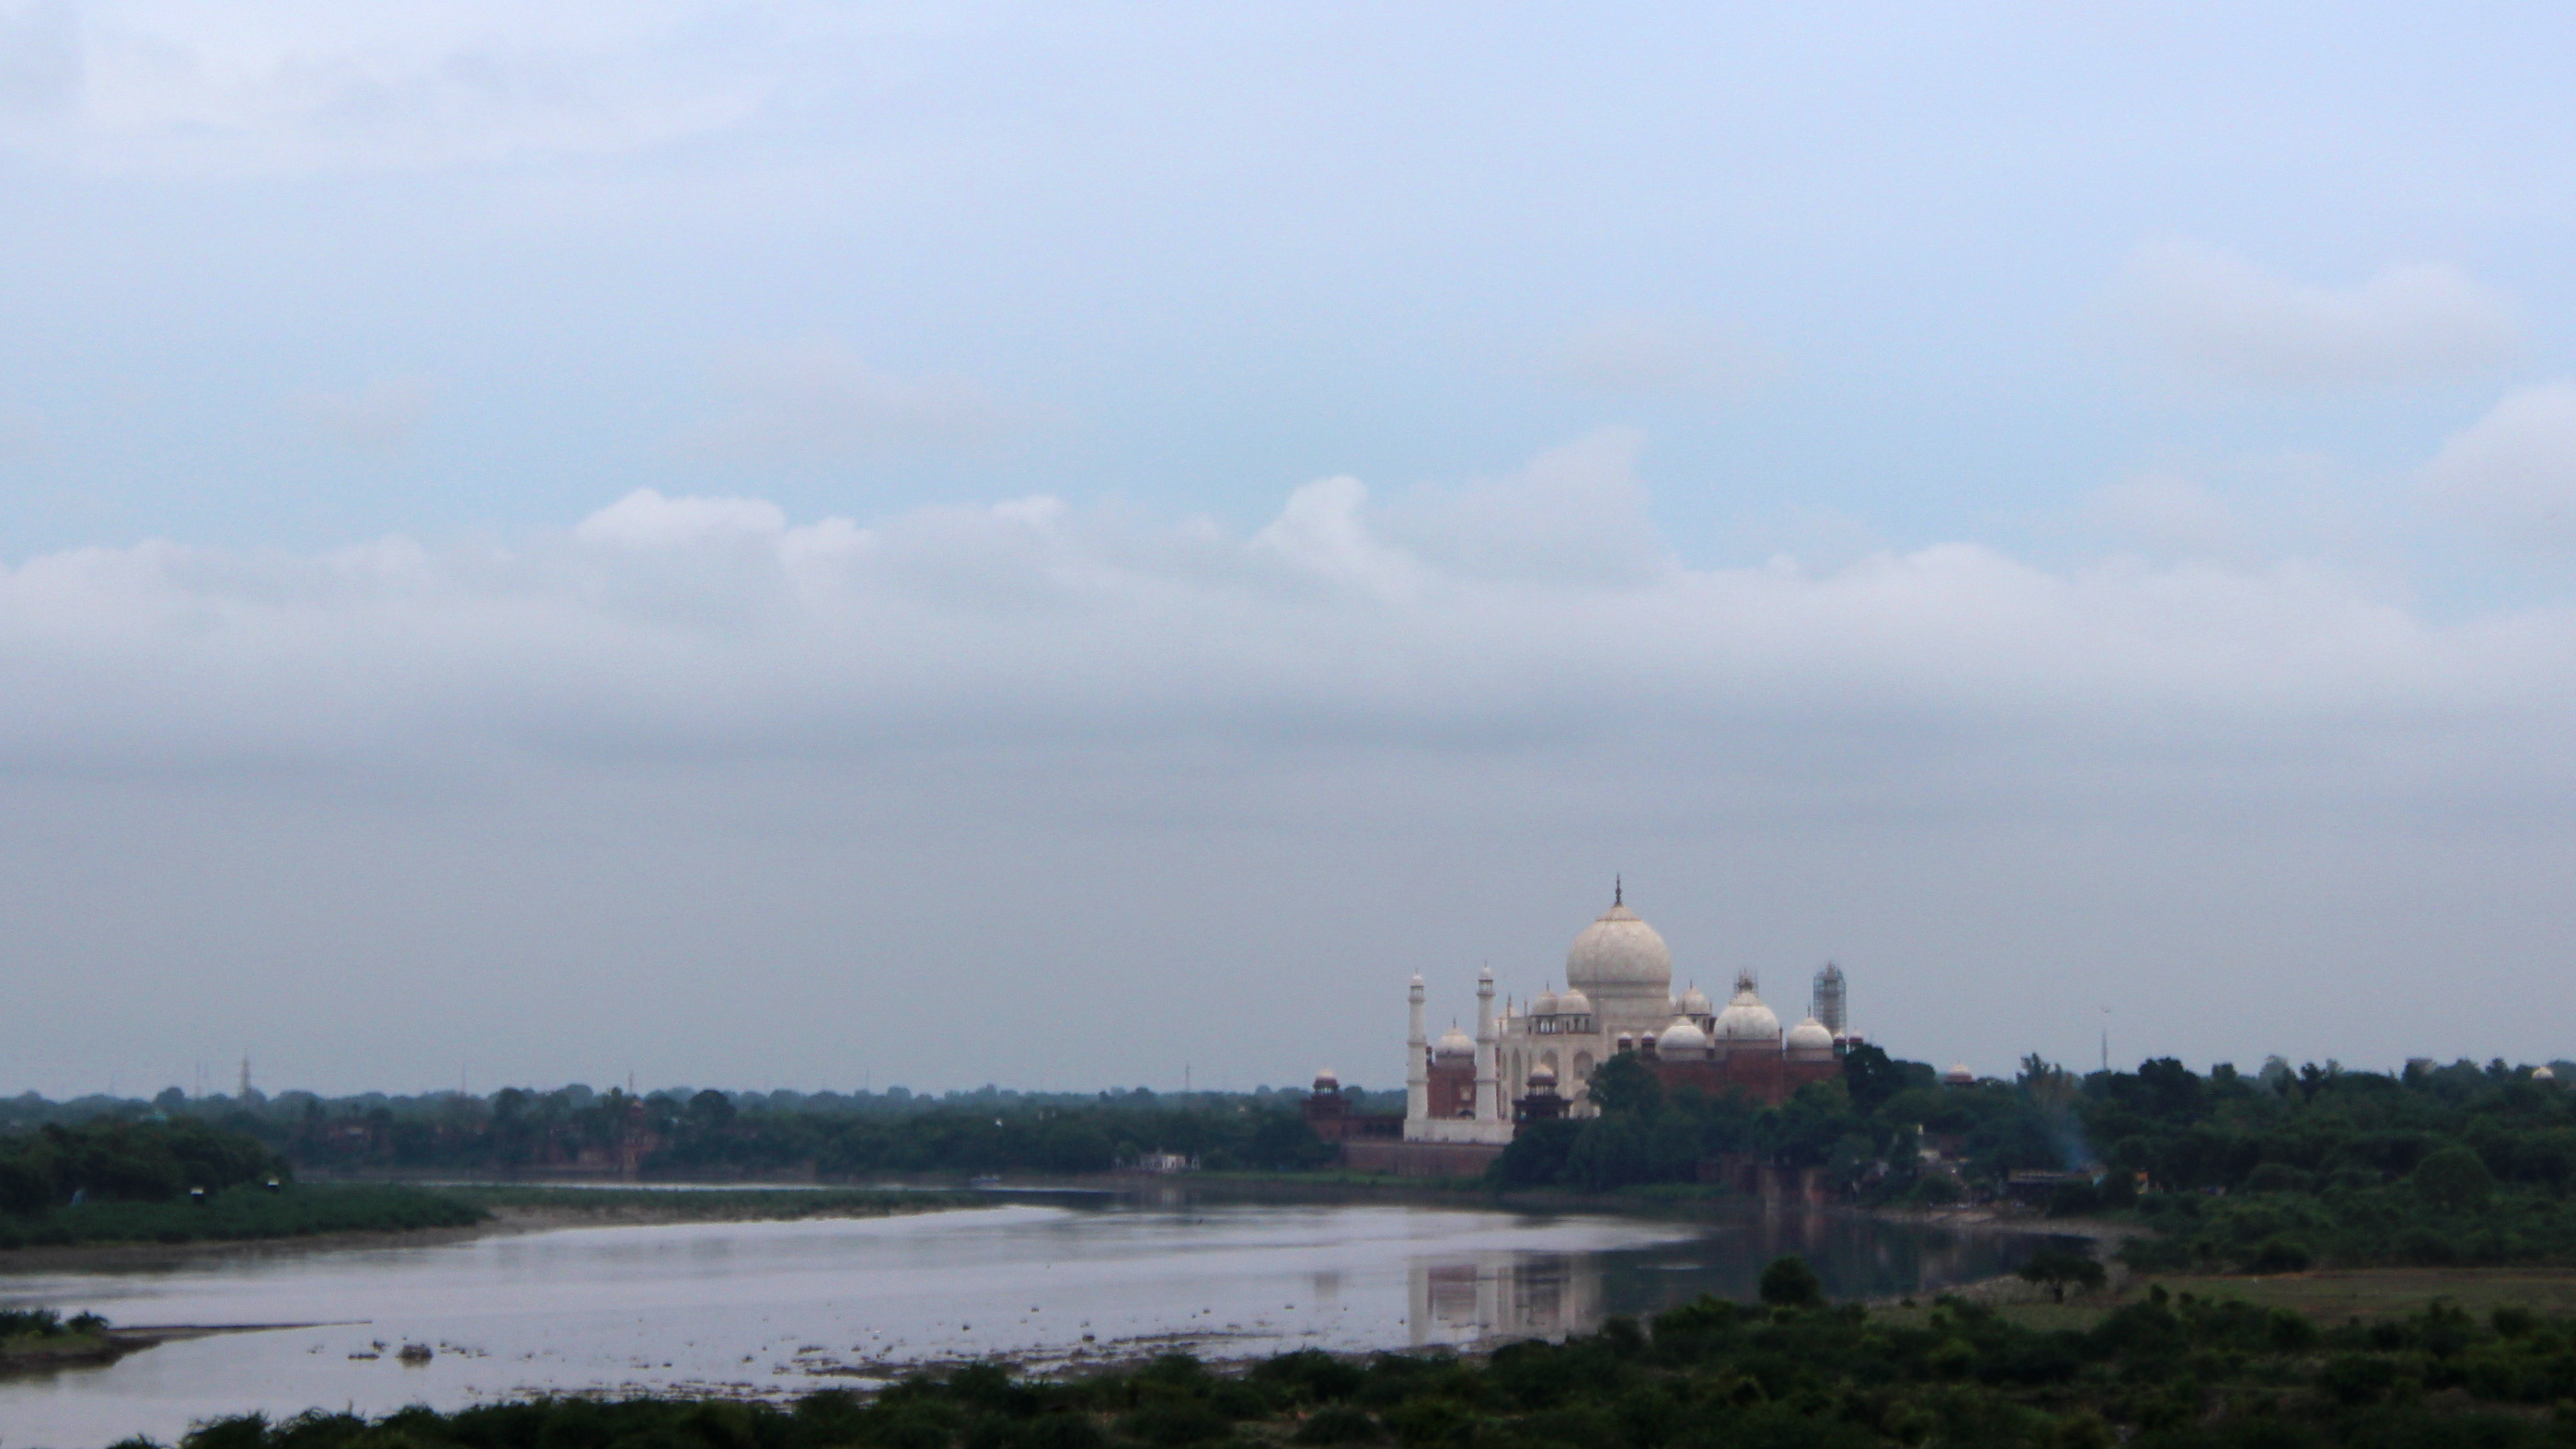 Taj Mahal as seen from the Agra Fort on a cloudy day.